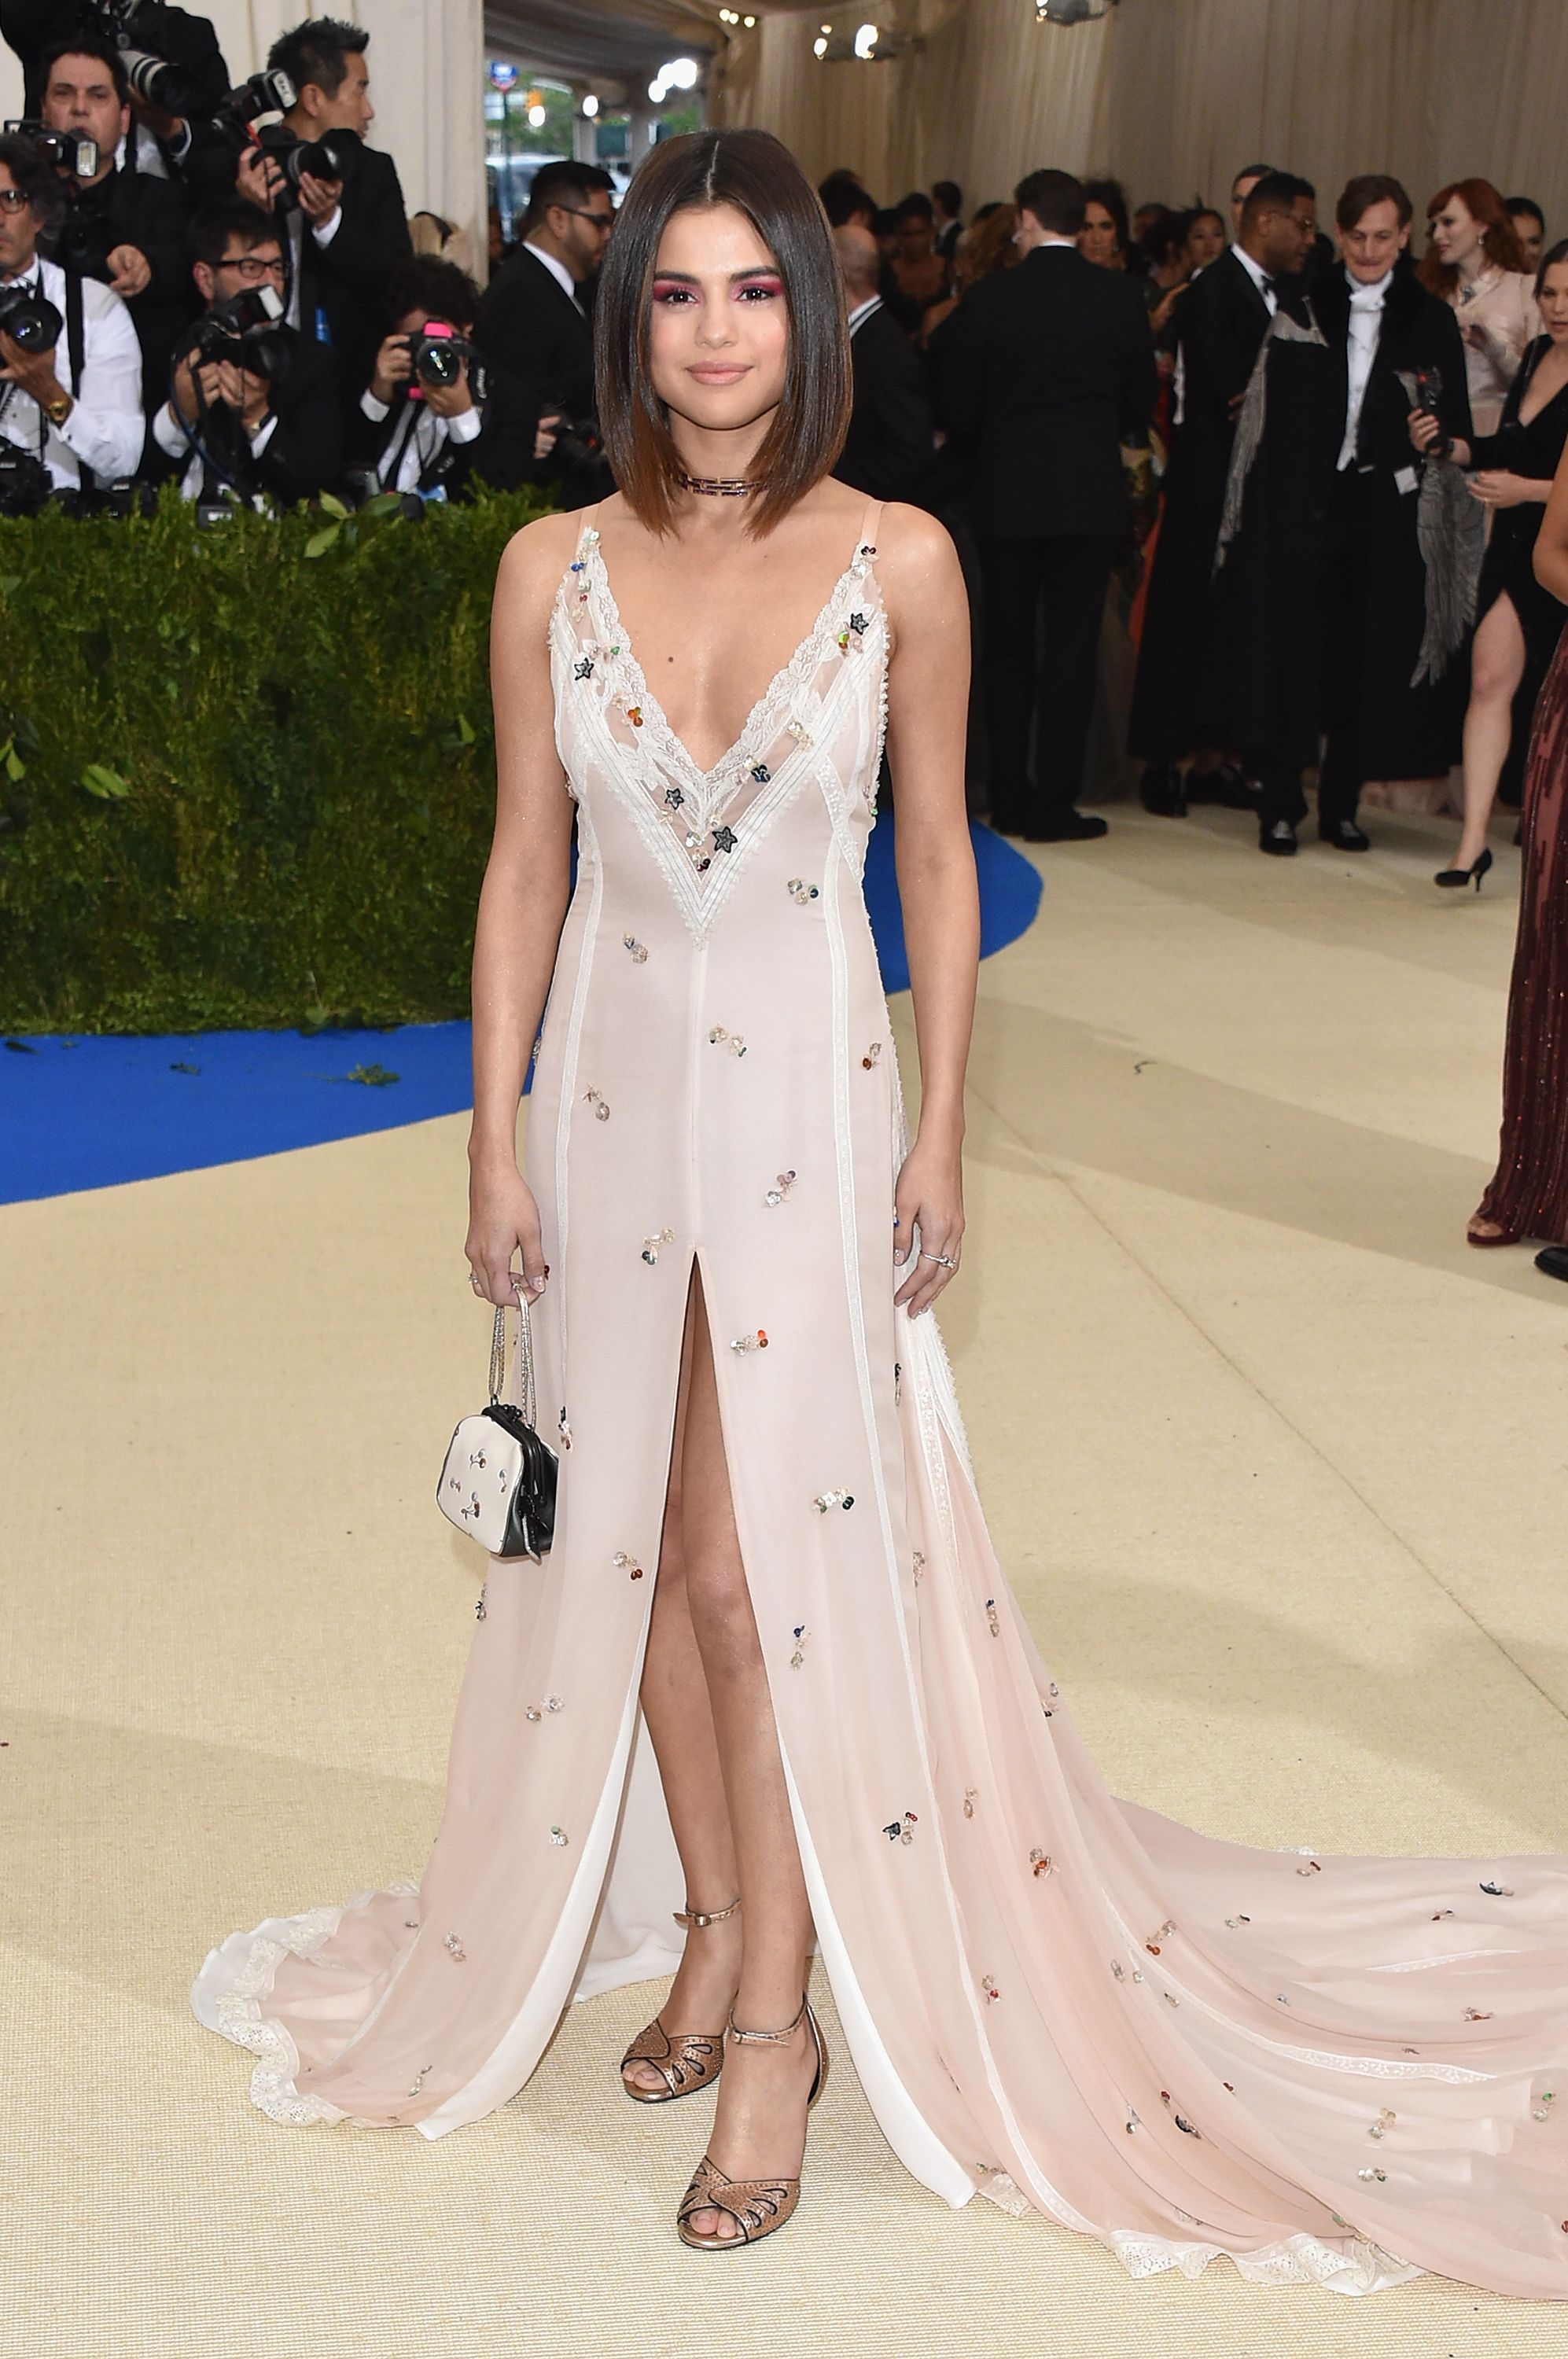 20 Best Worst Looks At The MetBall